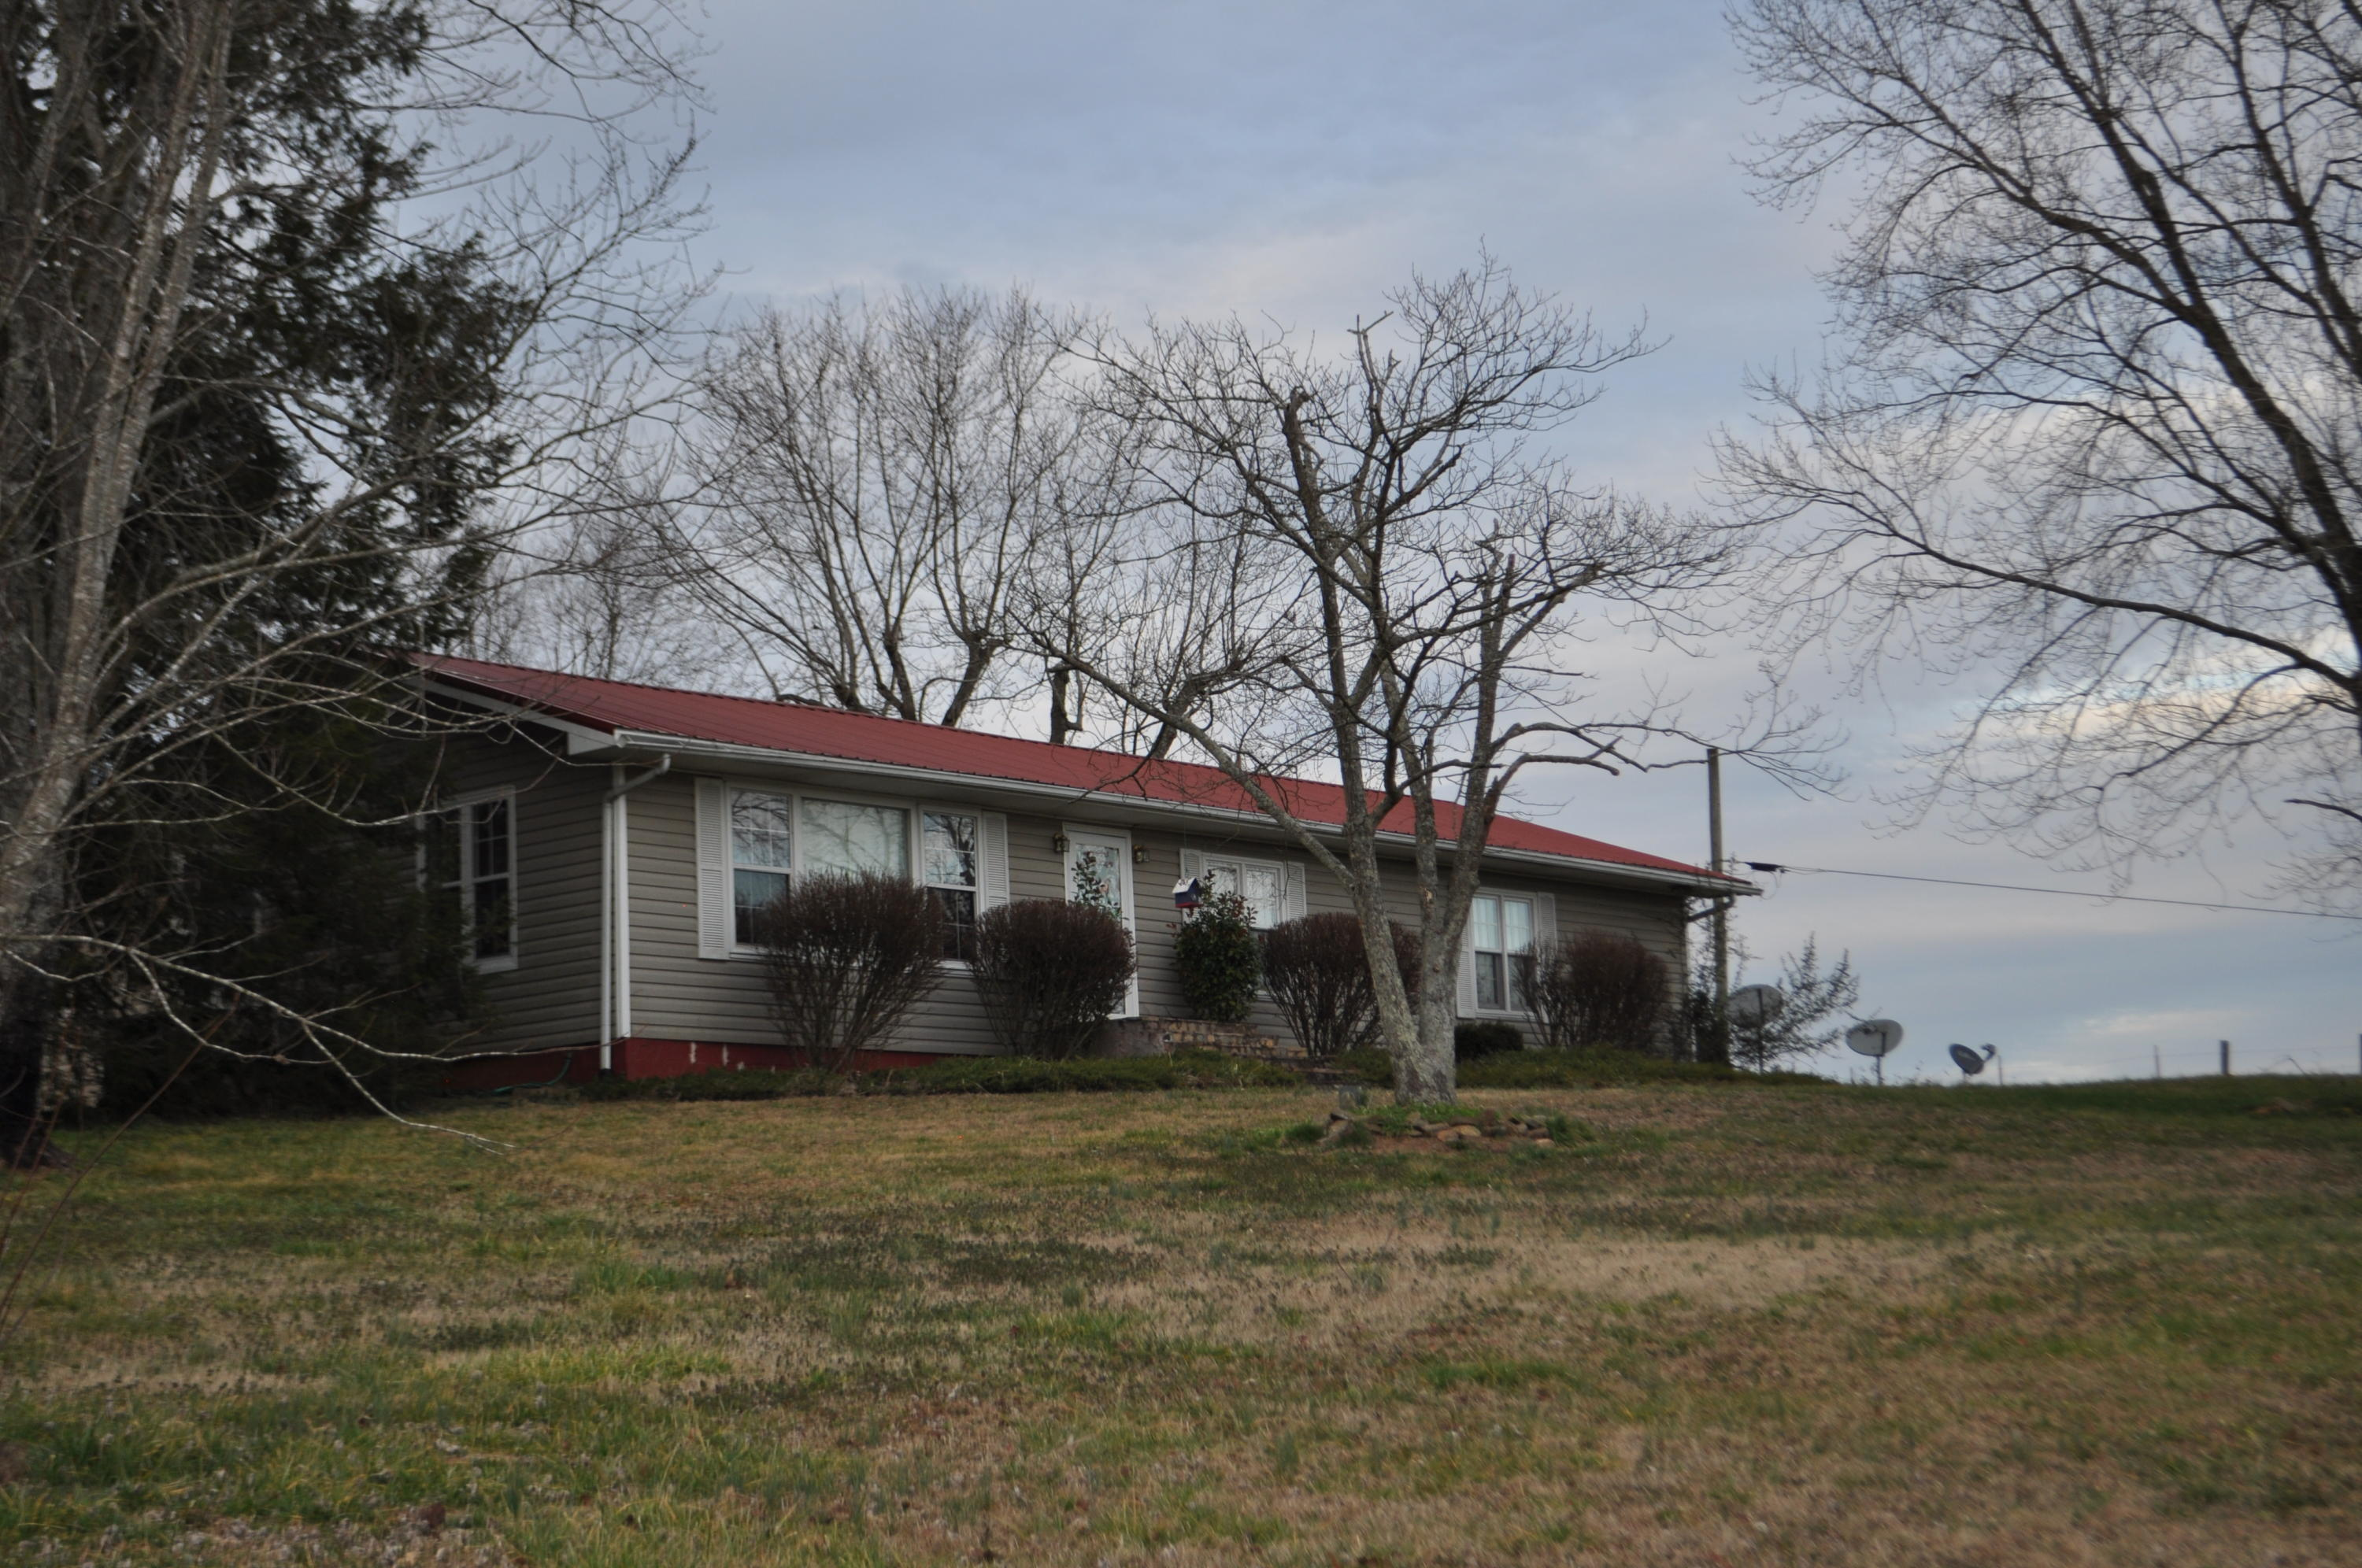 12053 Old State Hwy 28, Pikeville, TN 37367